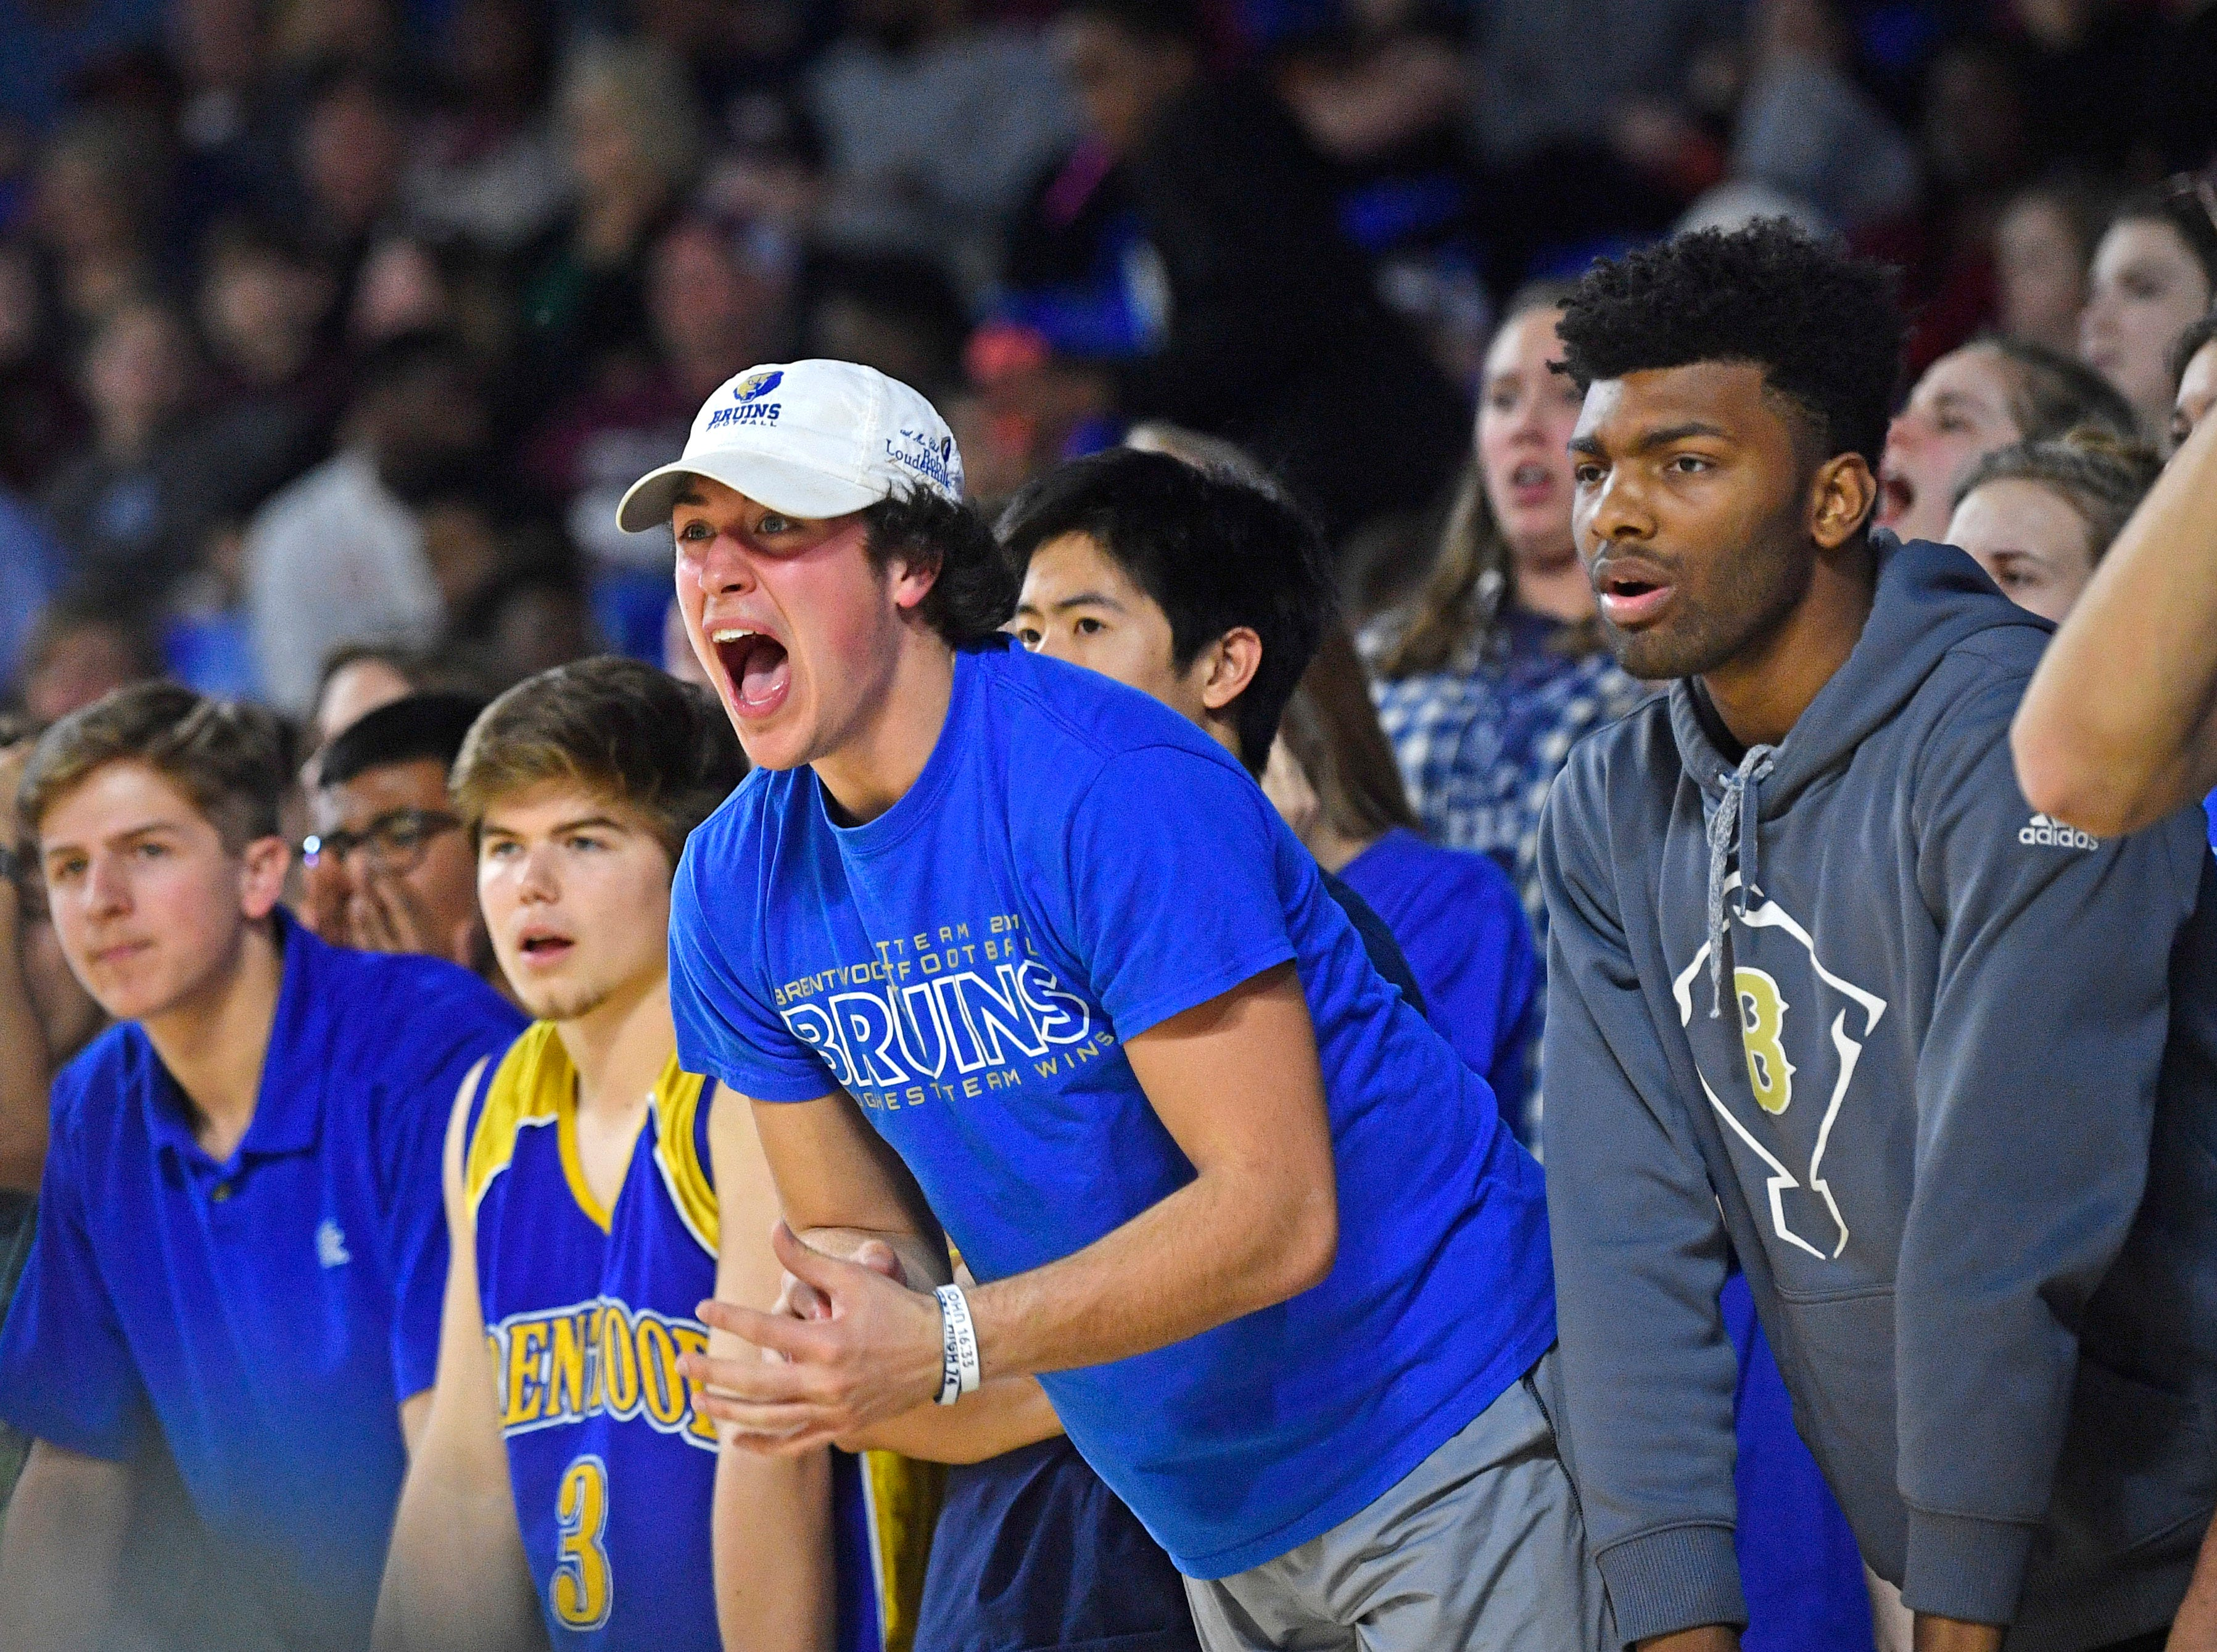 Fans didn't like a lot of the official's calls as Brentwood plays Memphis East in the TSSAA Class AAA semifinal  Friday, March 15, 2019, in Murfreesboro, Tenn.